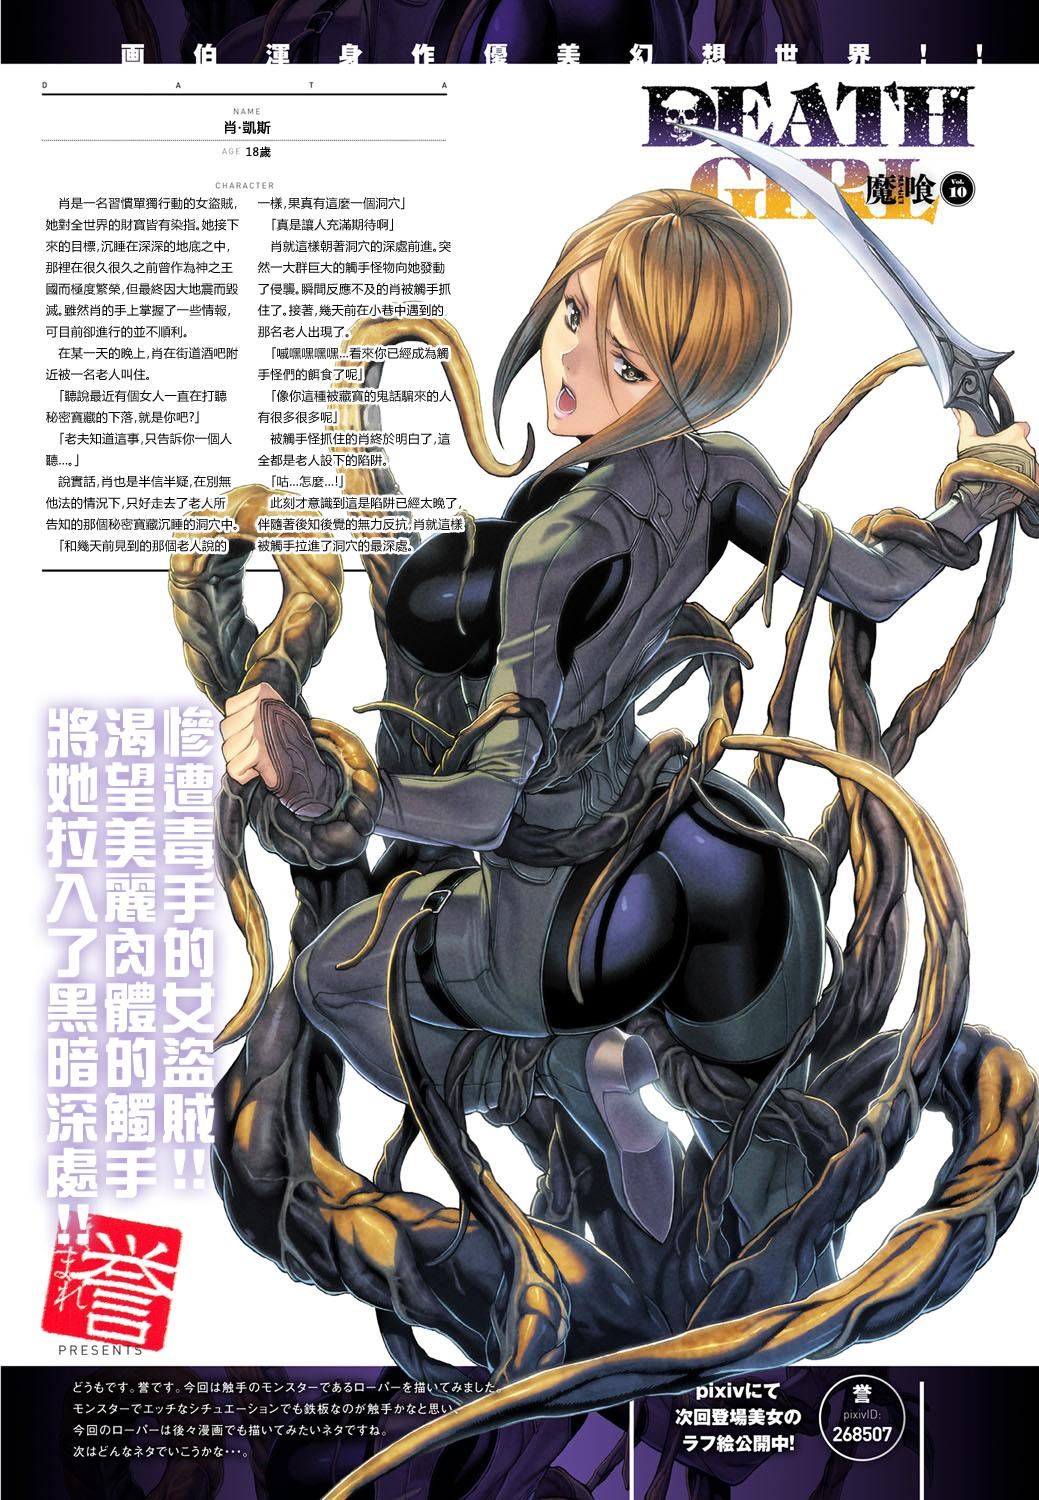 [Homare] Ma-Gui -DEATH GIRL- Show Hen (COMIC Anthurium 023 2015-03) [Chinese] [里界漢化組] 8